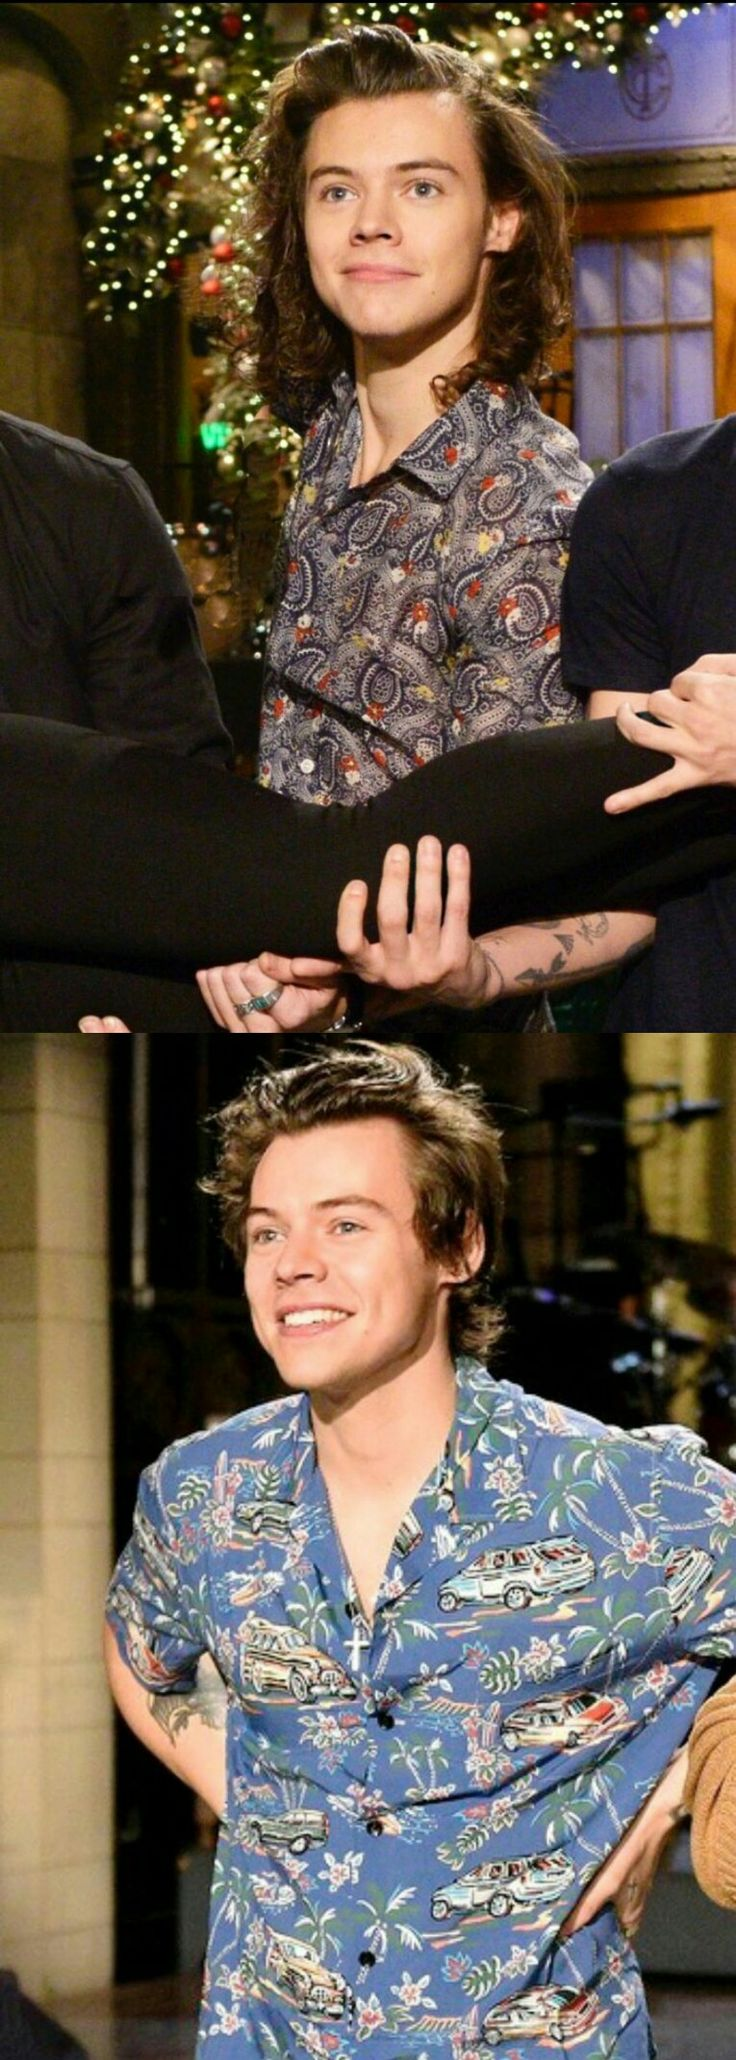 Harry at SNL . Then and now